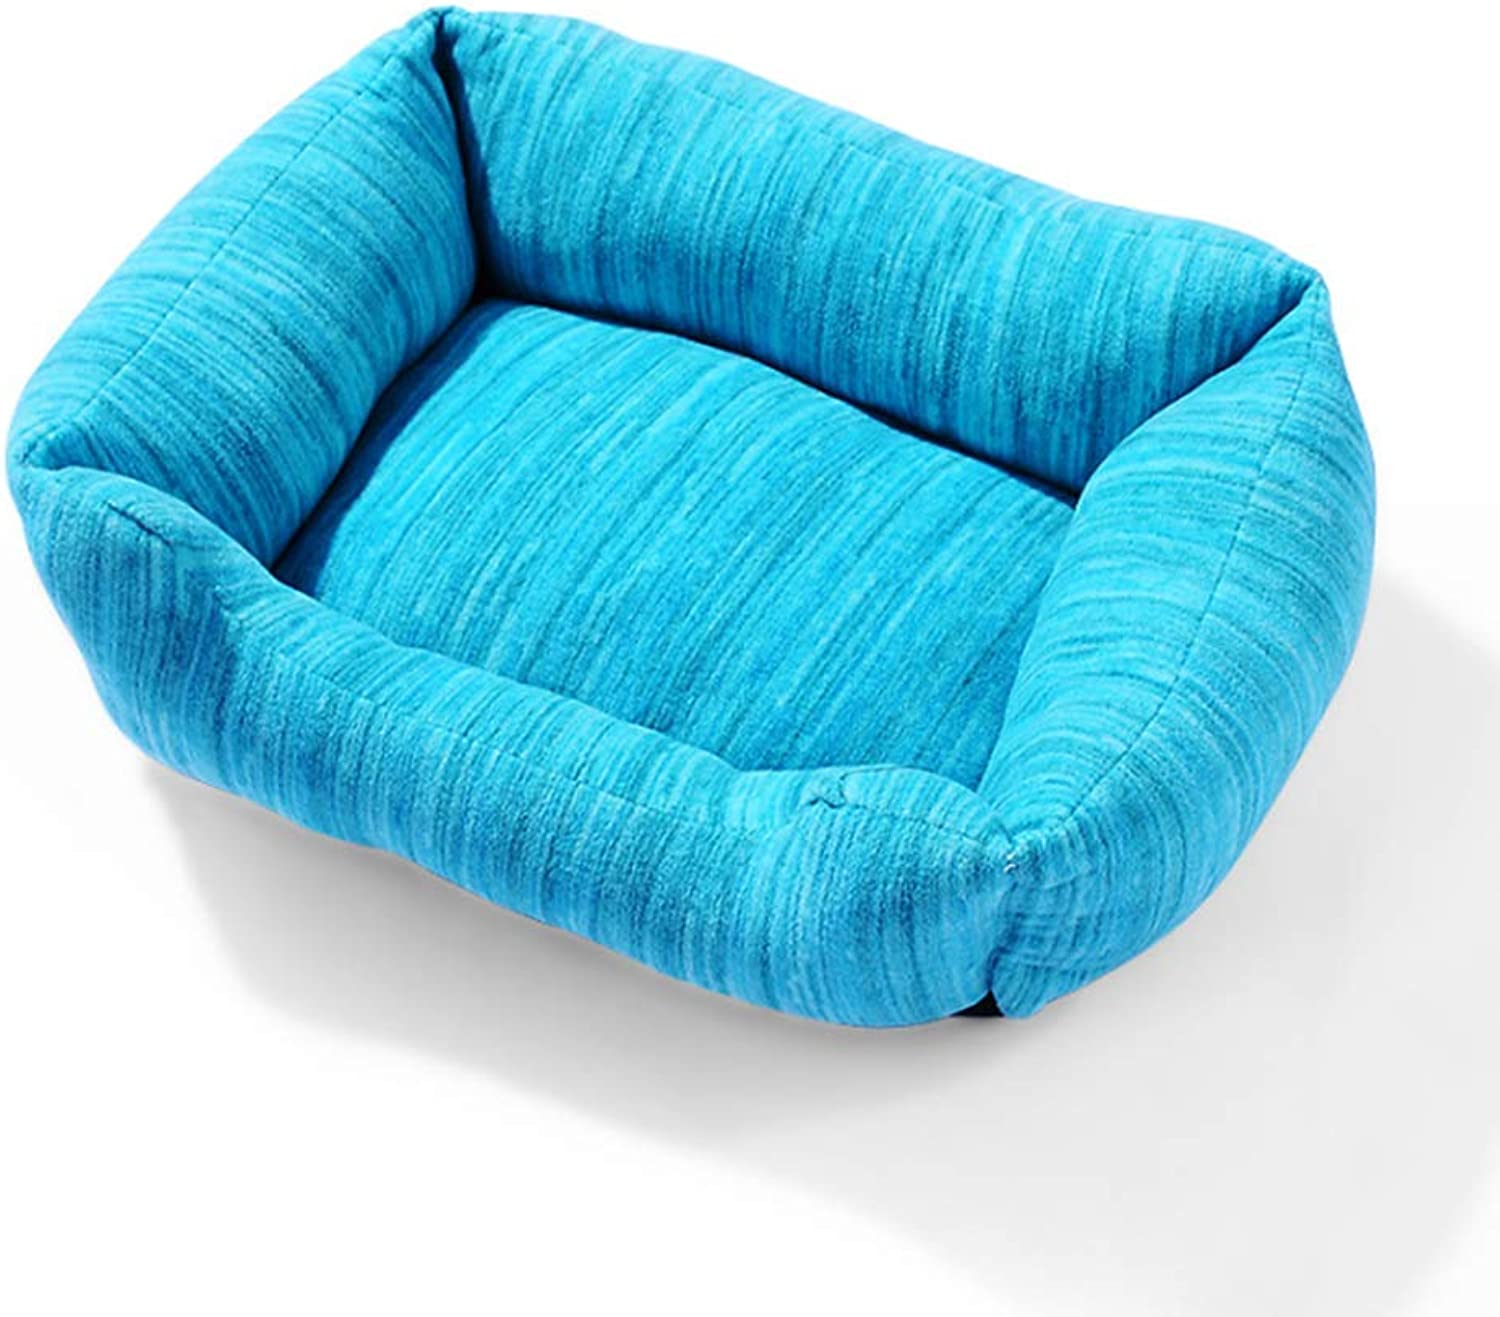 Deluxe Cat Dog Beds Houses Sofa Couch Lounge for Home and Travel,bluee,S